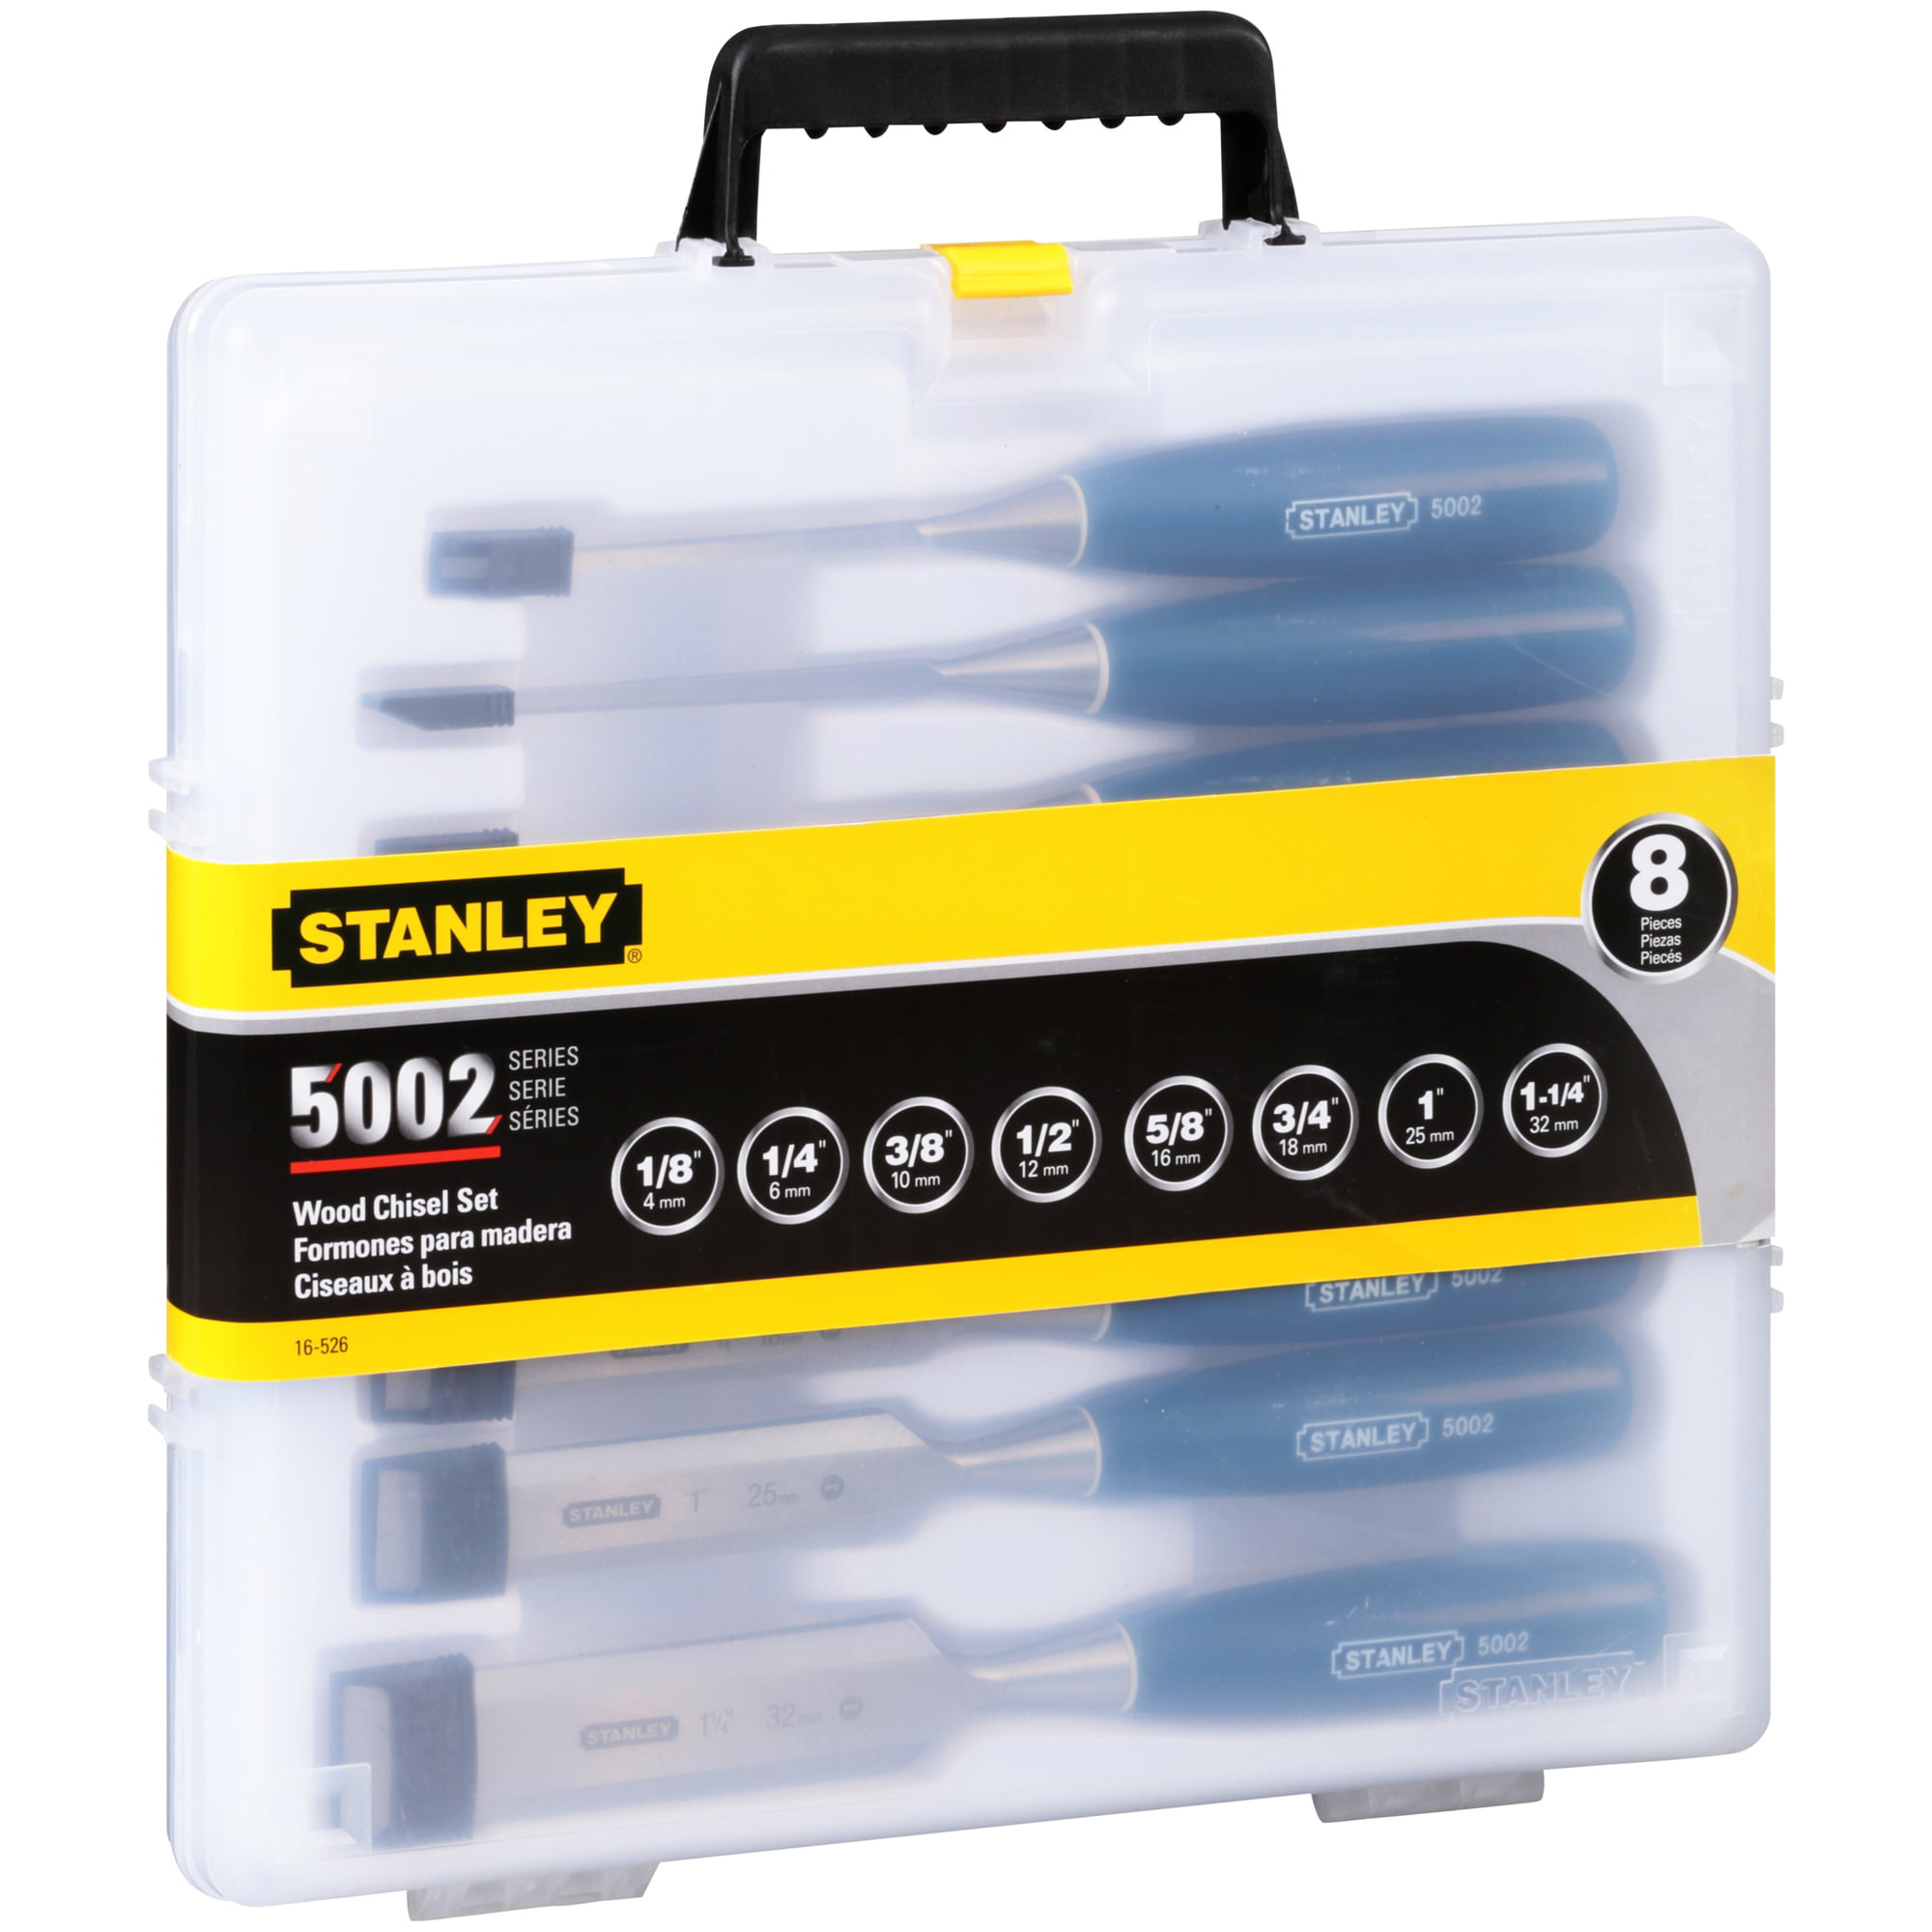 Stanley 5002 Series Wood Chisel Set 8 PC, 8.0 PIECE(S) by Stanley Black & Decker, Inc.